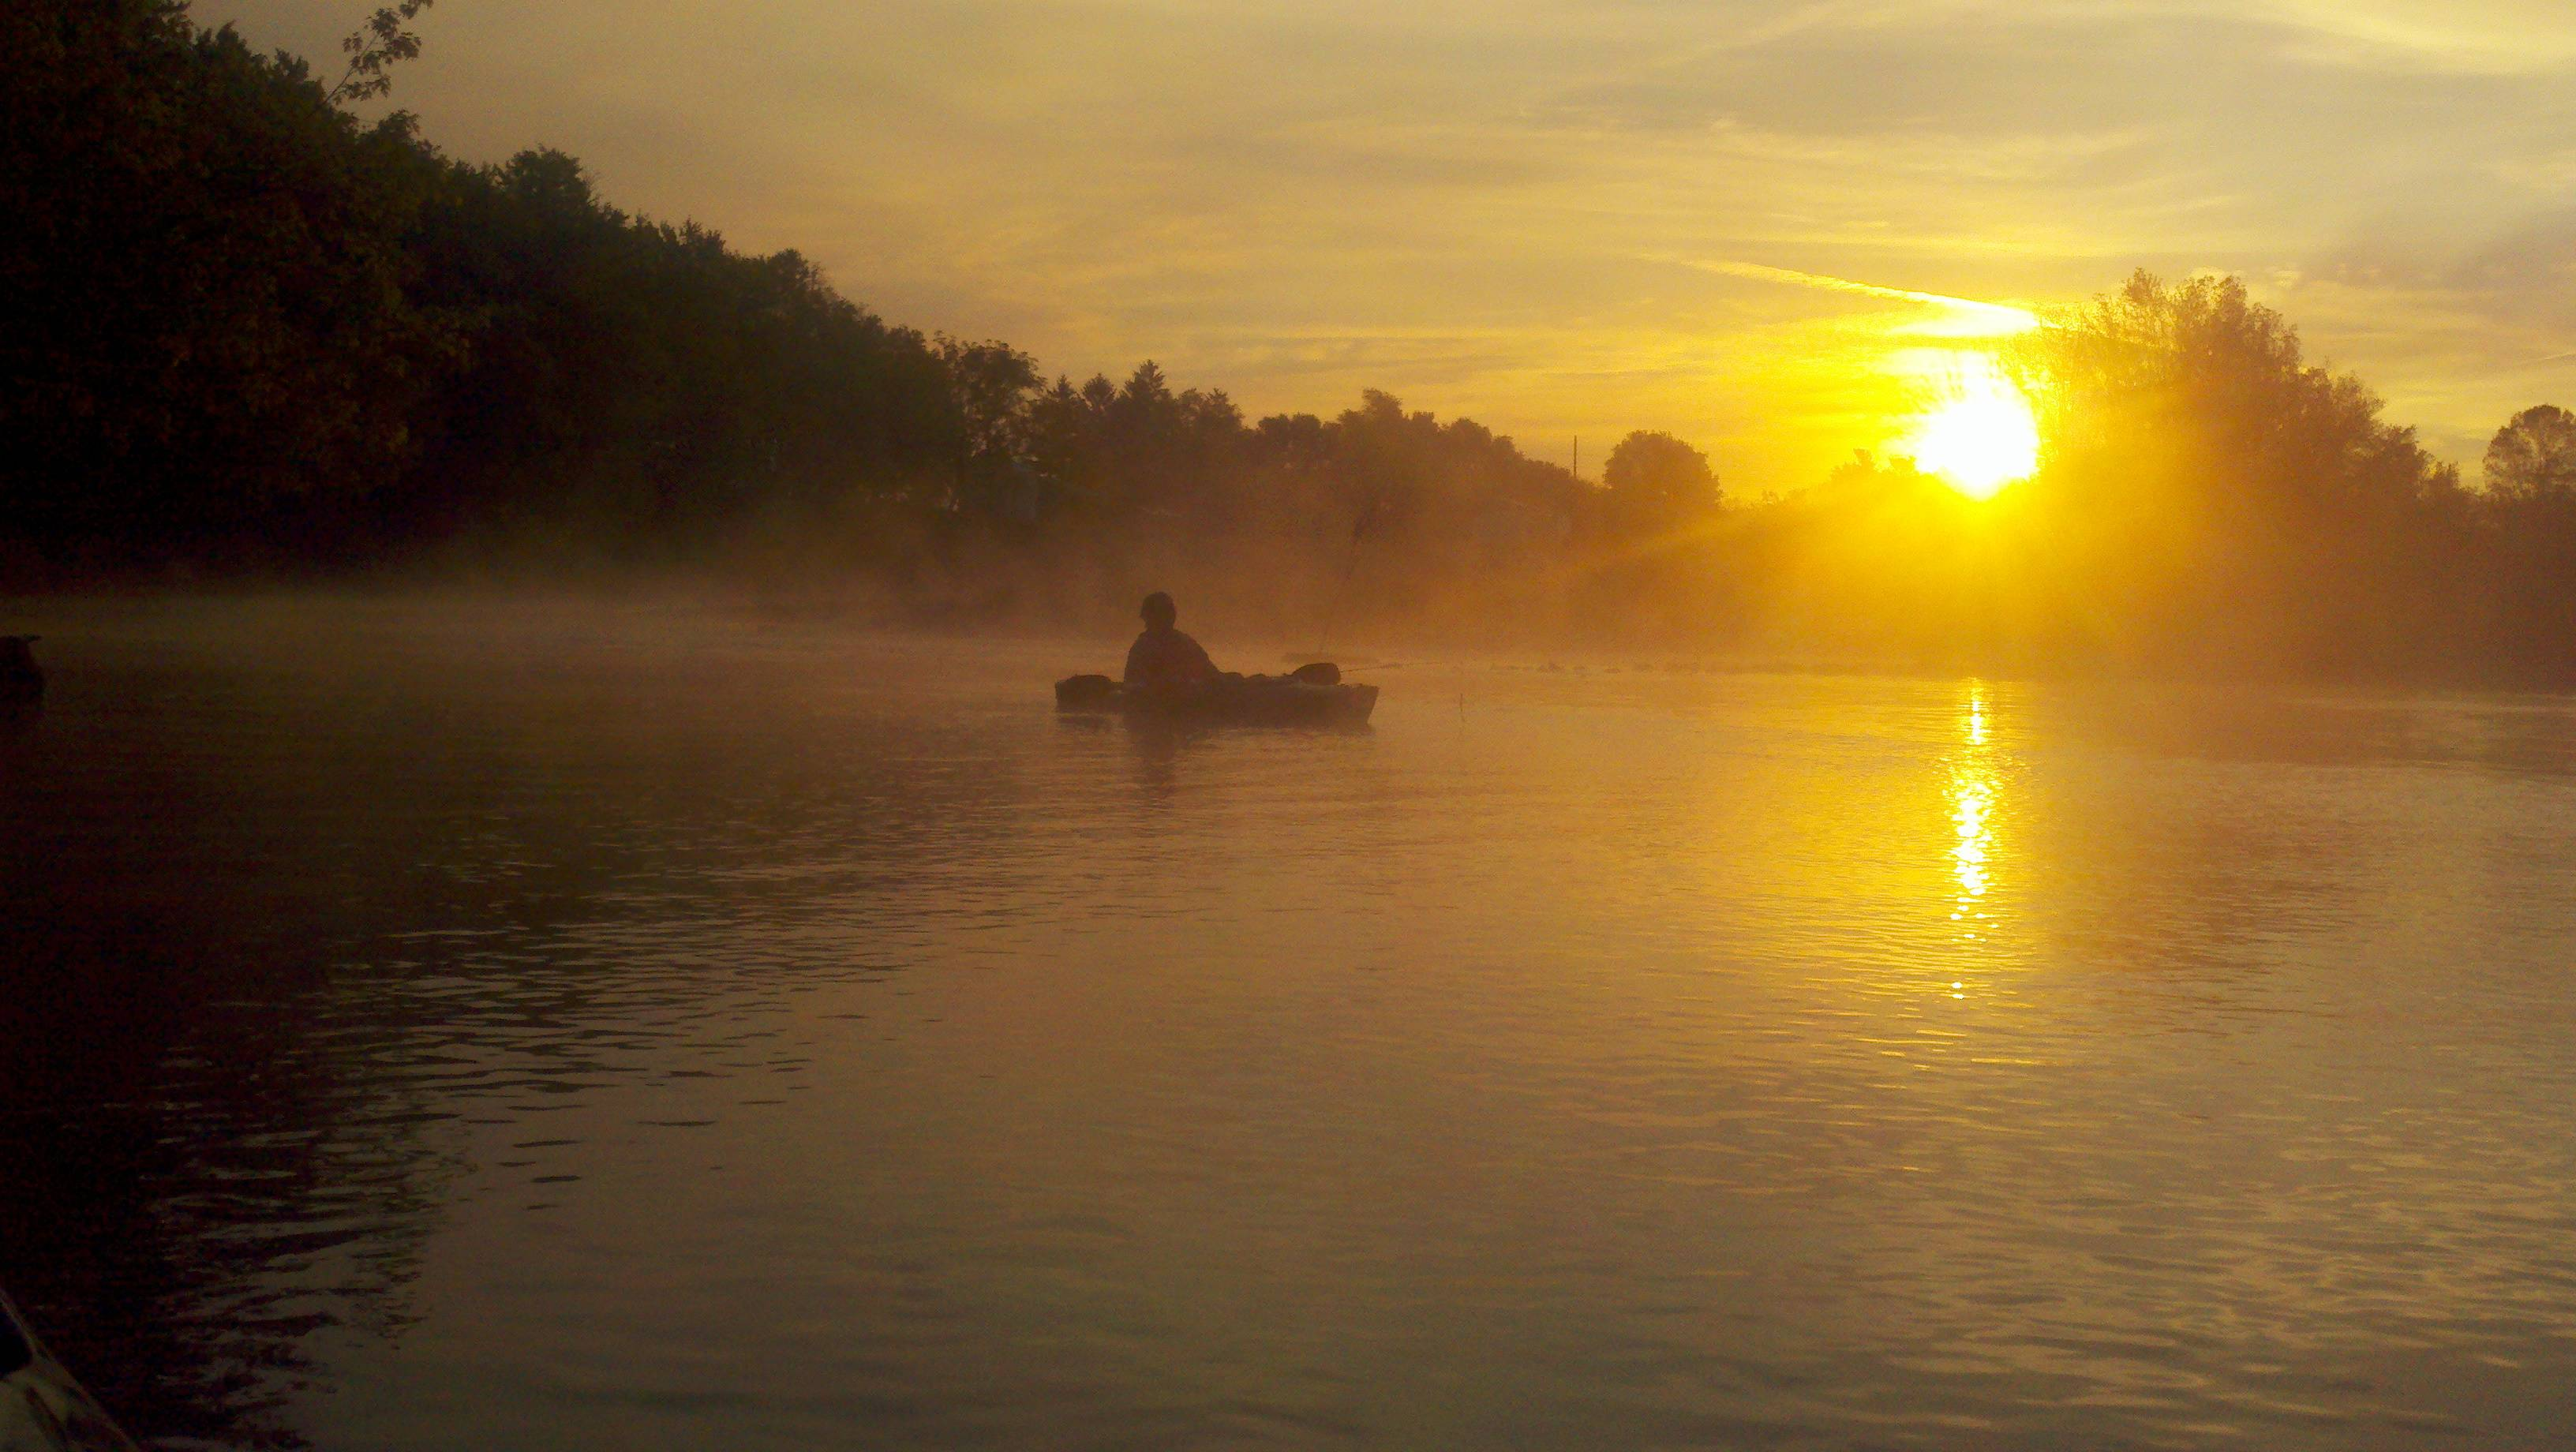 Download Kayak Fishing Wallpaper Gallery